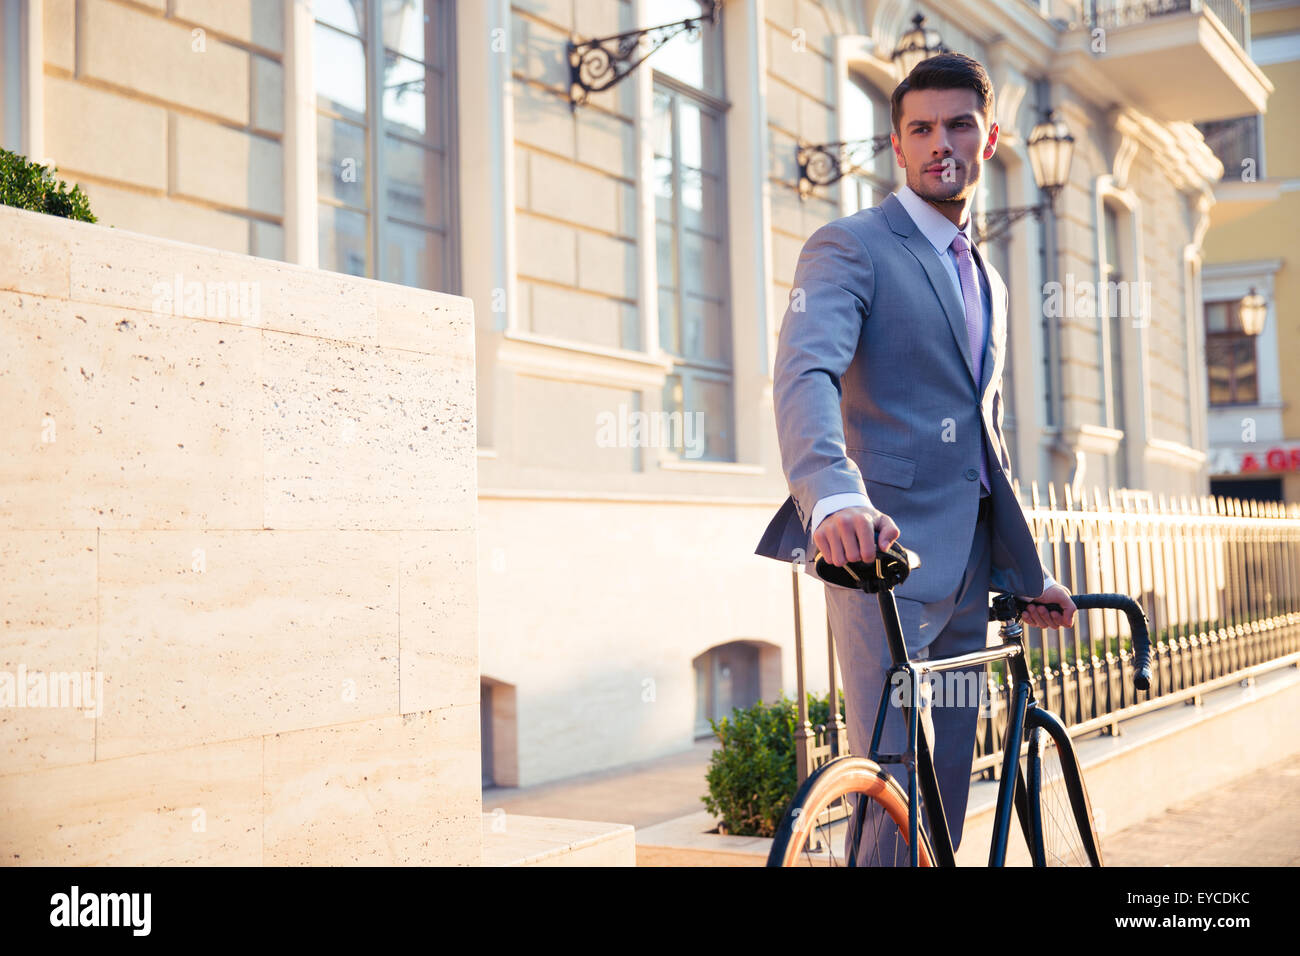 Portrait of a confident businessman standing with bicycle in old town and looking away - Stock Image